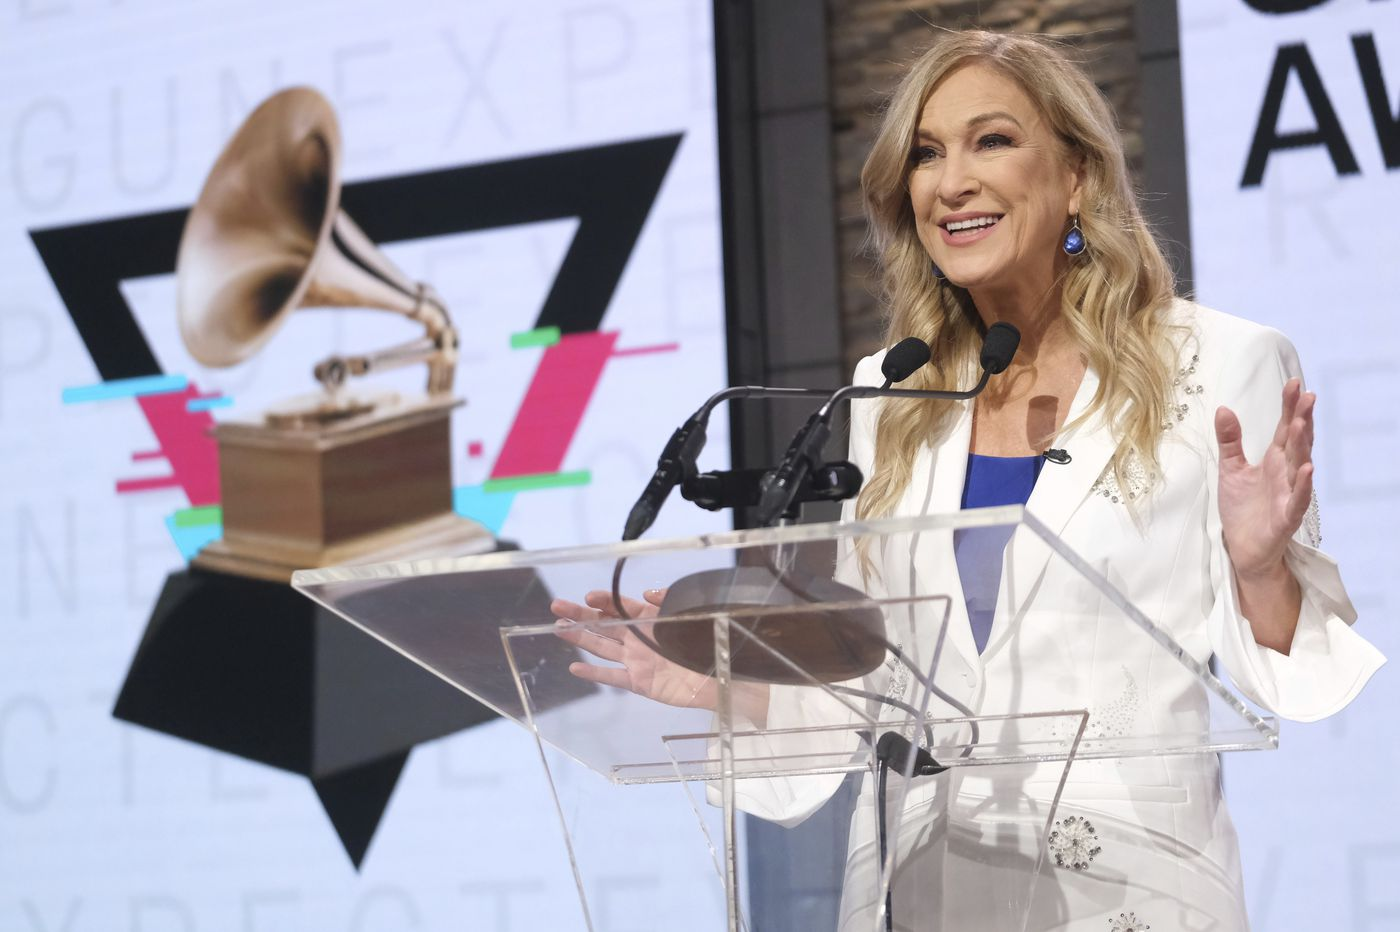 Grammys CEO says she was ousted after reporting harassment